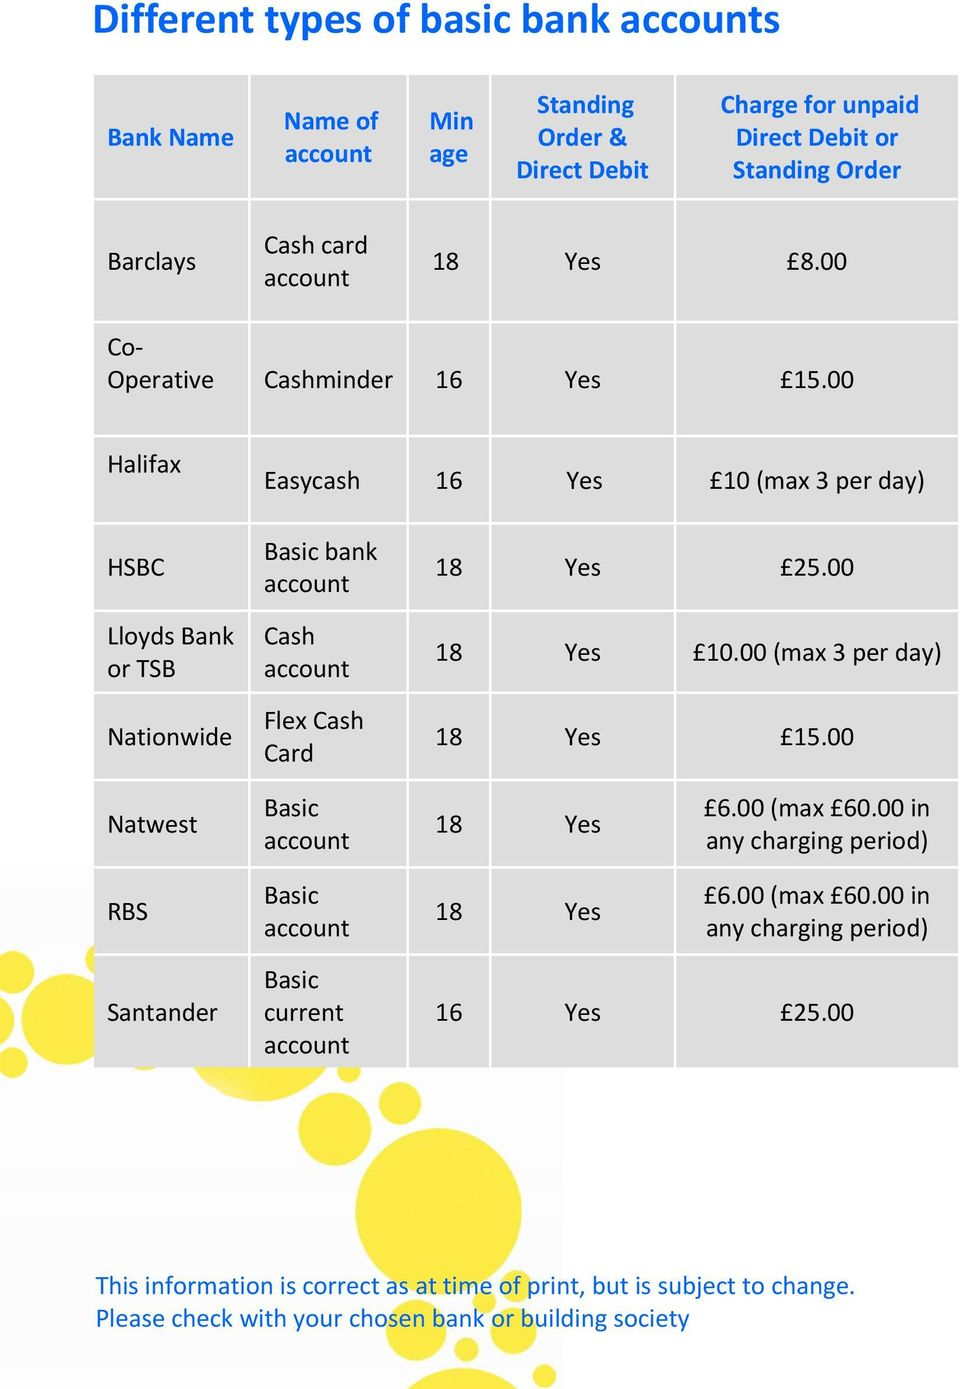 00 18 Yes 10.00 (max 3 per day) 18 Yes 15.00 Natwest Basic 18 Yes 6.00 (max 60.00 in any charging period) RBS Basic 18 Yes 6.00 (max 60.00 in any charging period) Santander Basic current 16 Yes 25.